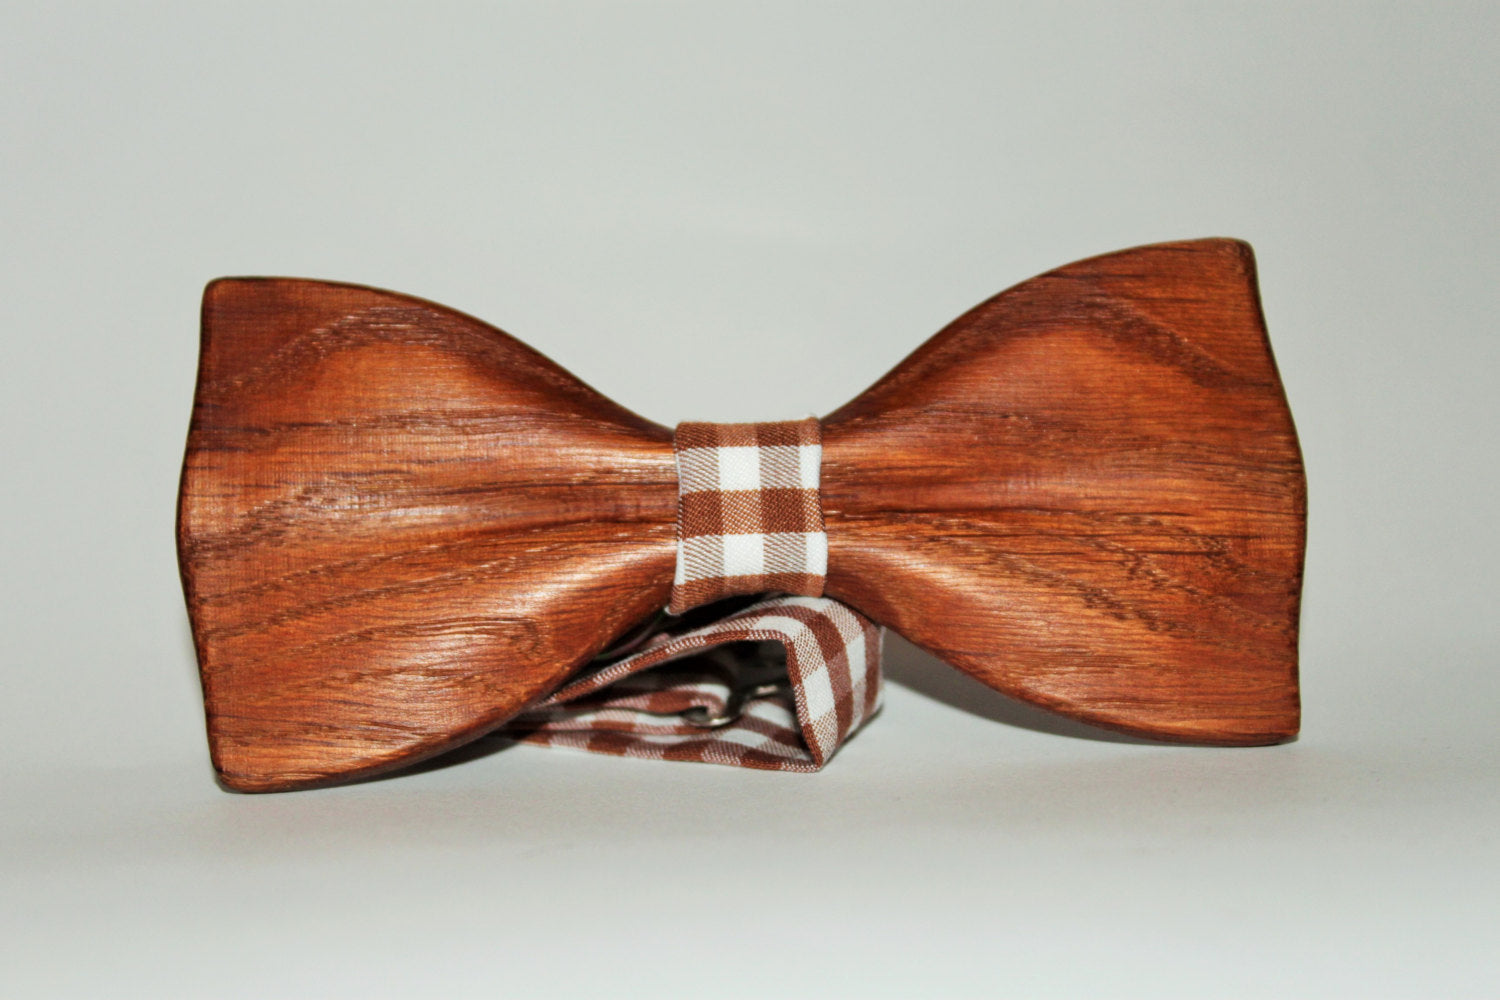 Brown bow tie for men made from oak wood with pocket square